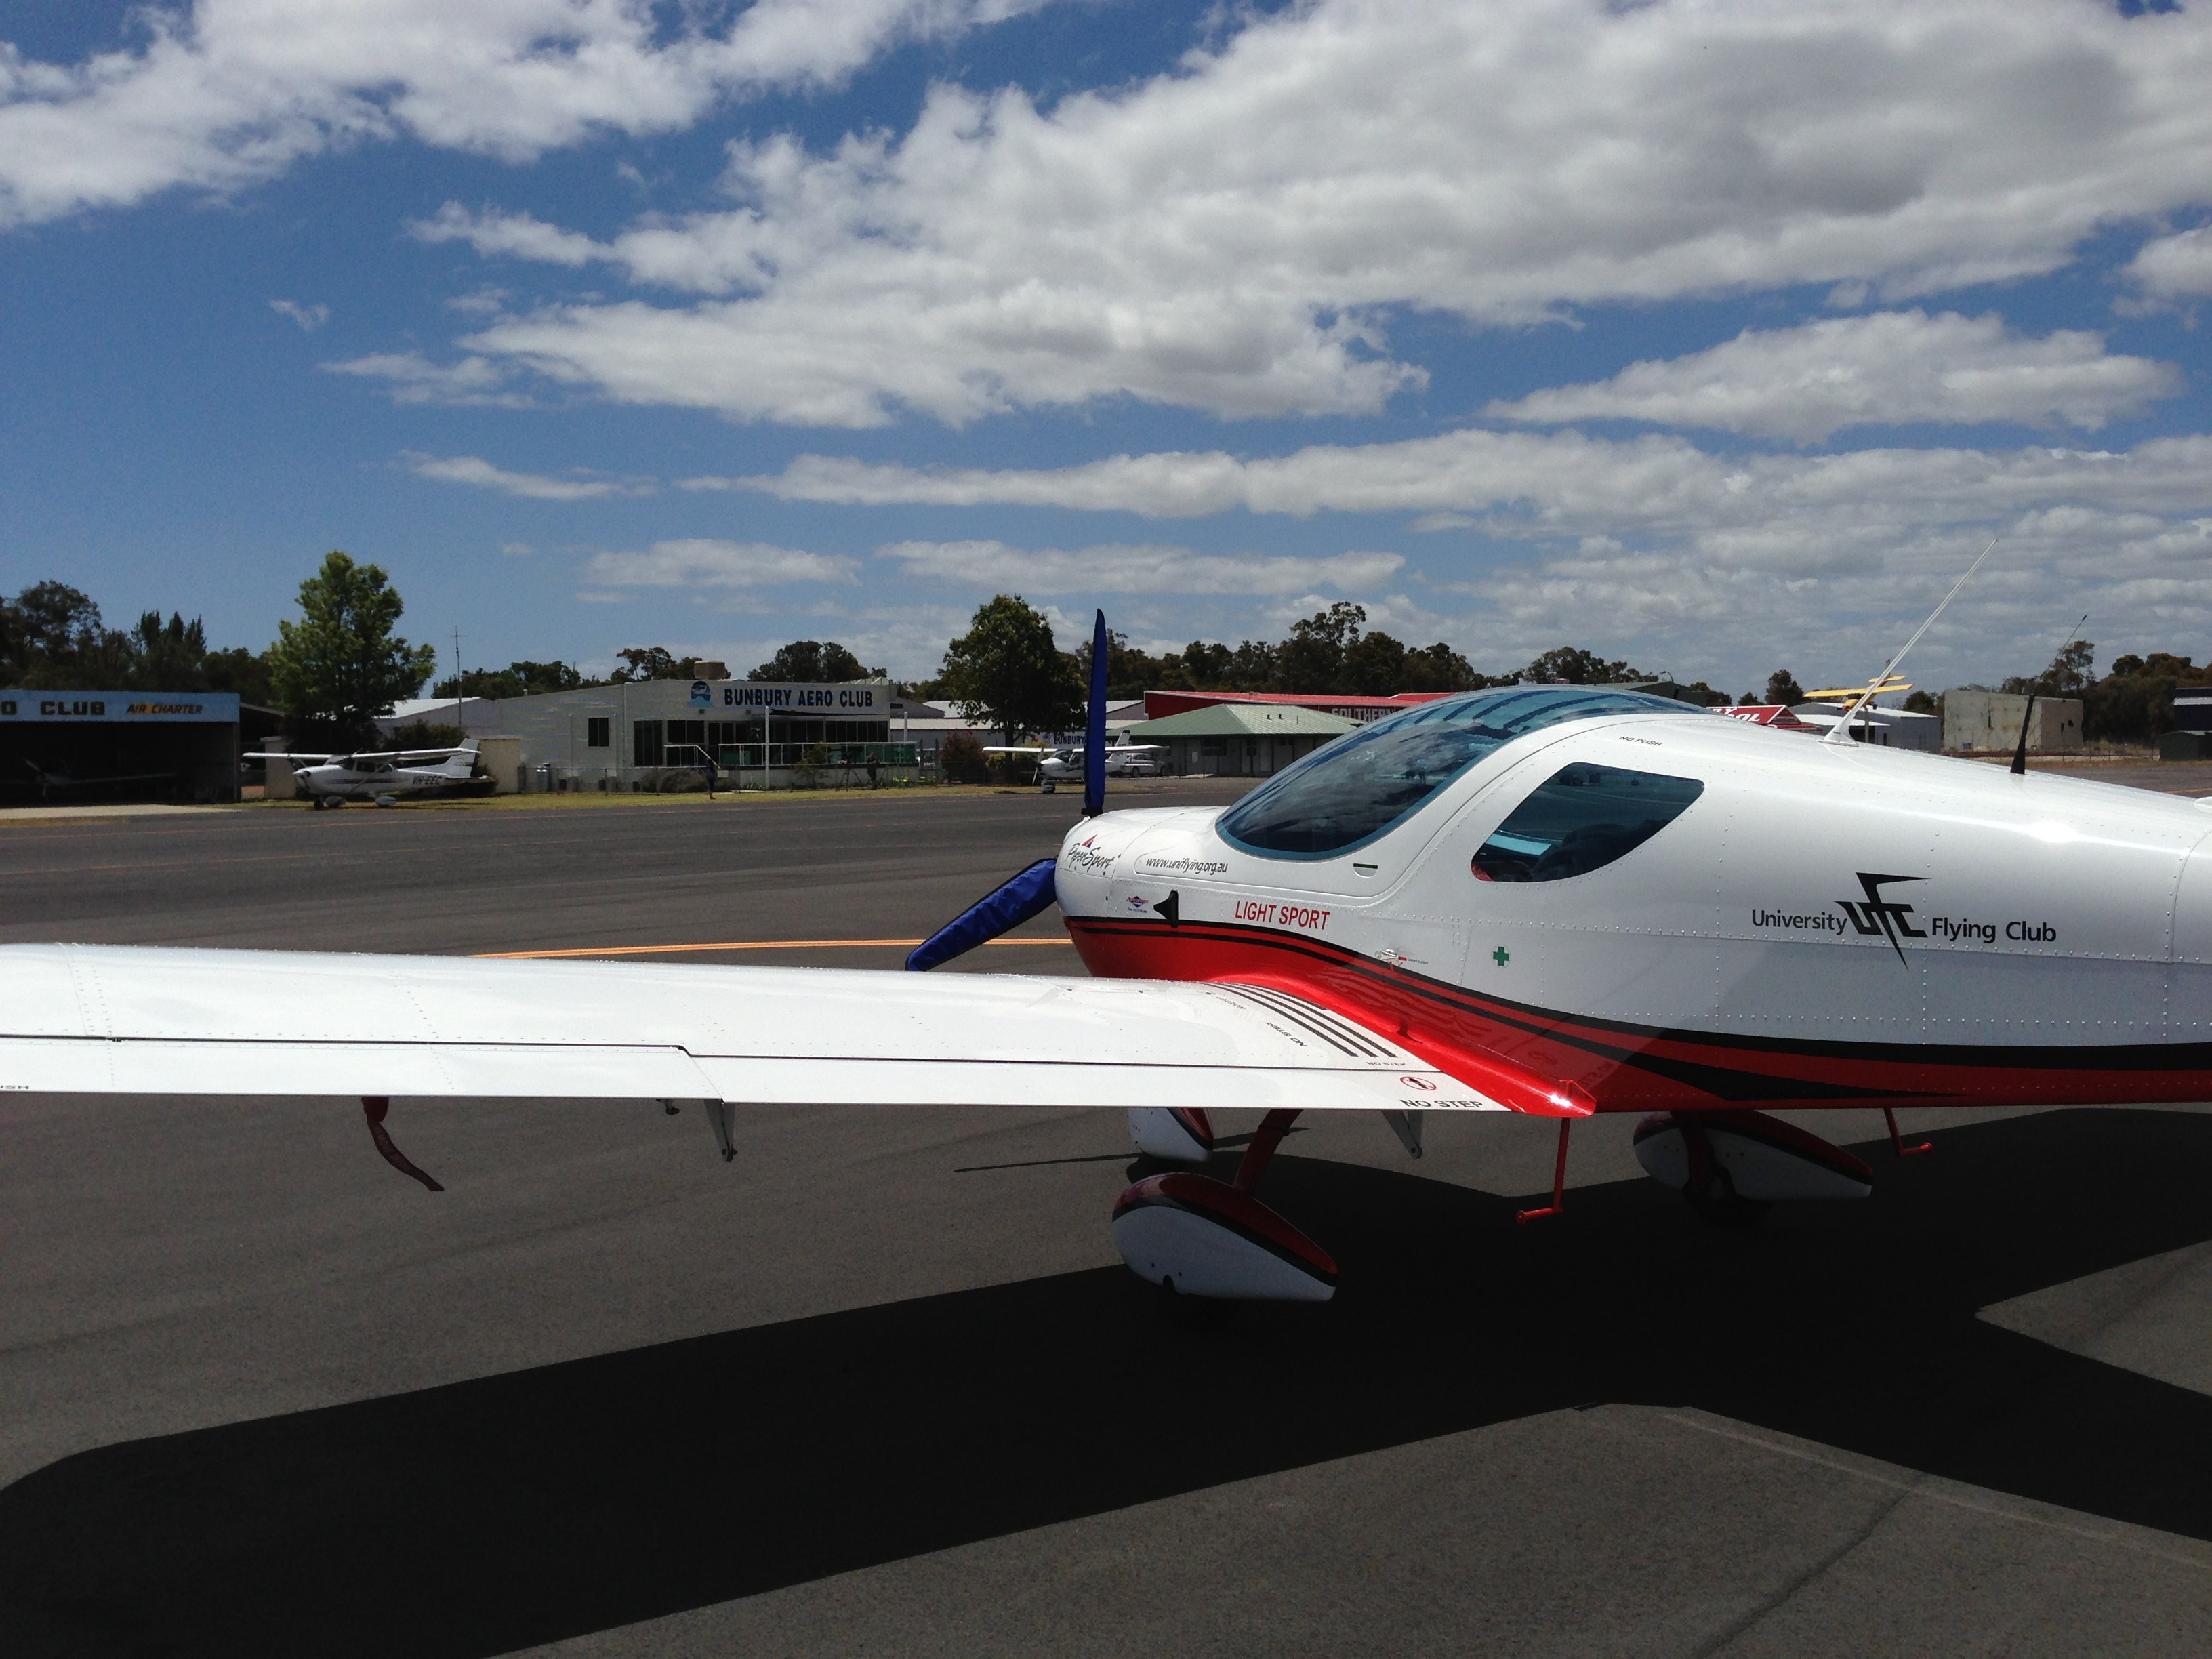 VH-EZT at Bunbury Aero Club